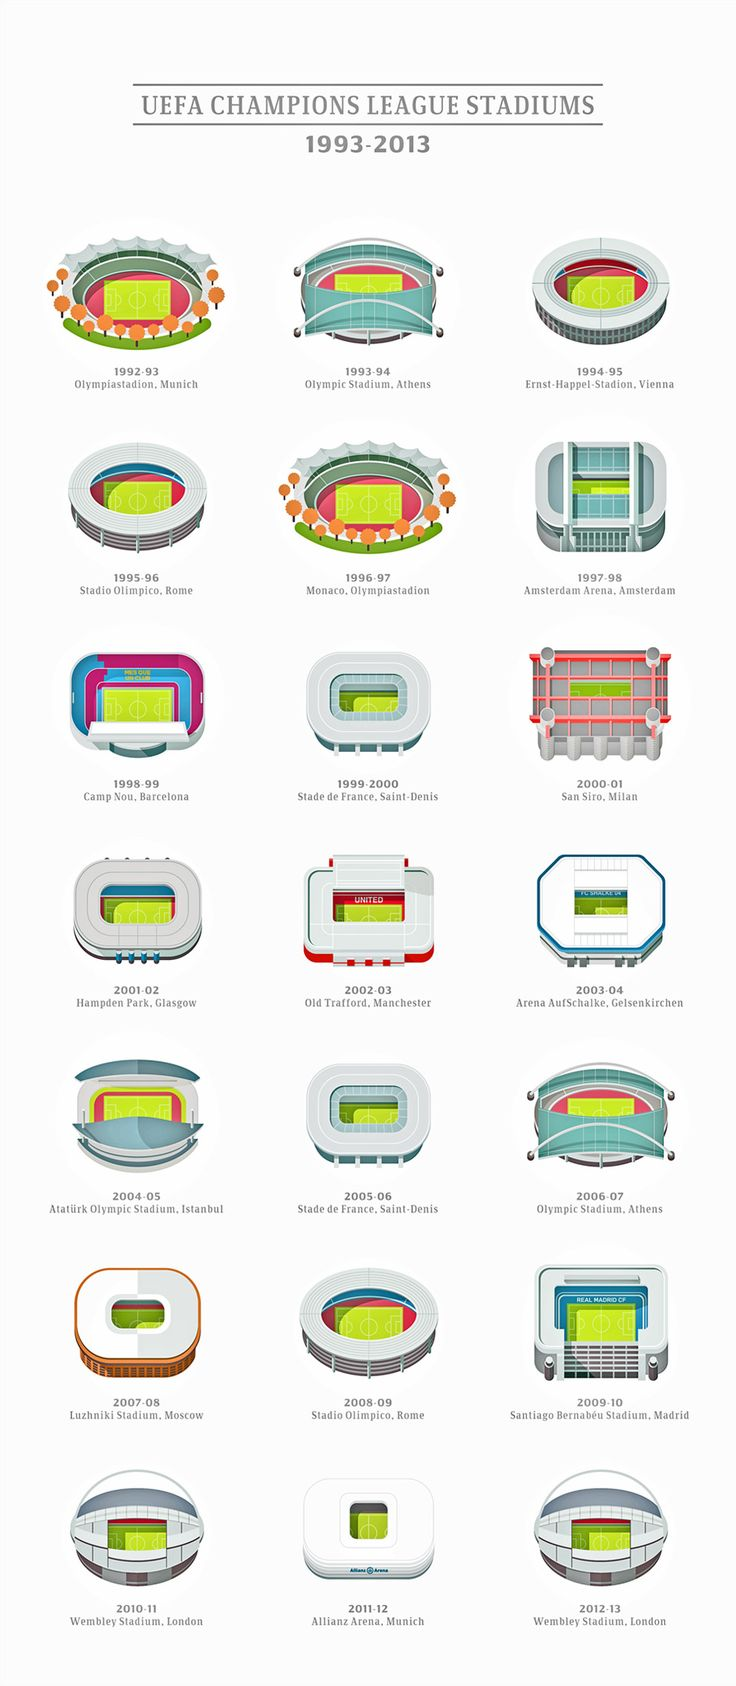 Italy-based visual designer Jacopo Ferretti has come up with a series of illustrations featuring all the stadiums of the UEFA Champions League finals from